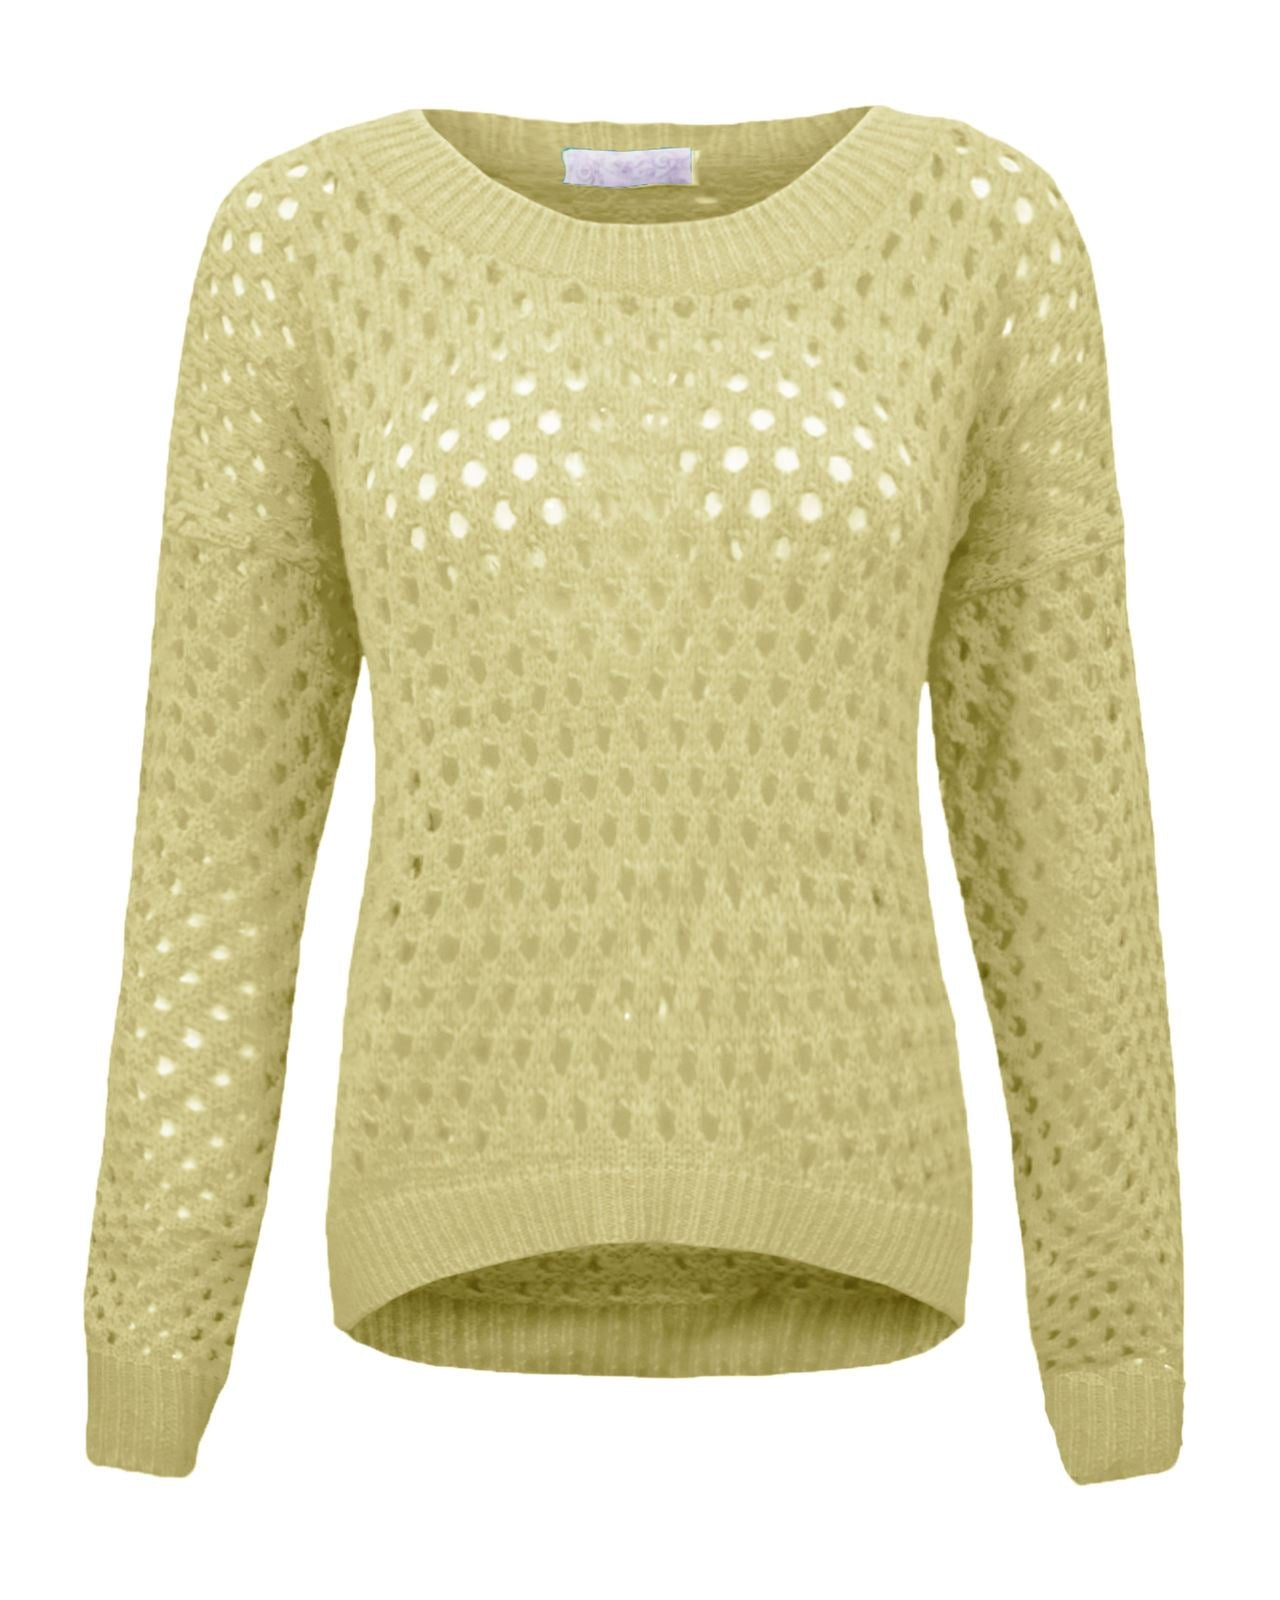 Ladies Womens Holey Knit Jumper Stretch Sweater Crew Neck Long Sleeves Top 8-14